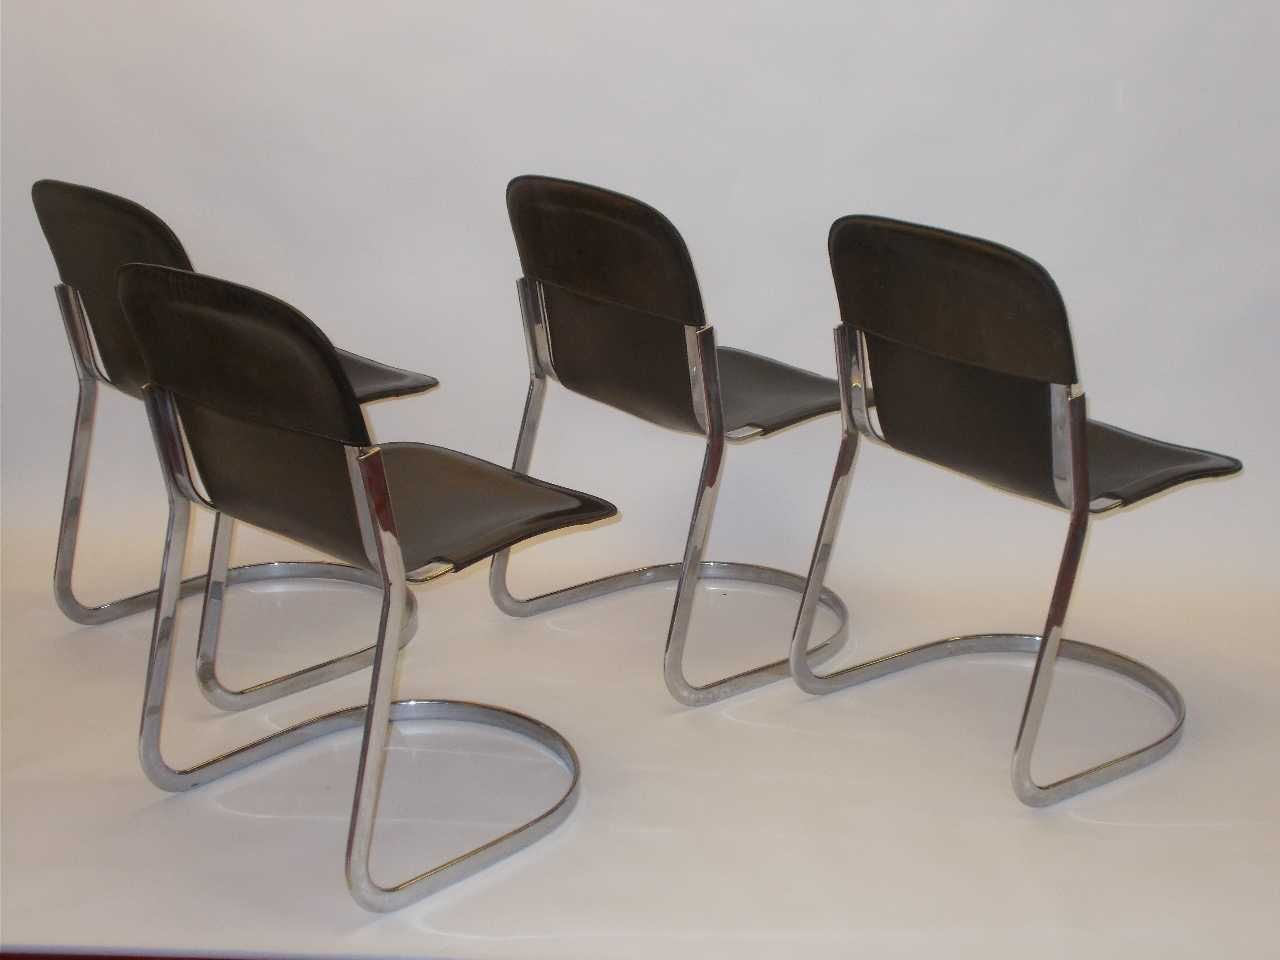 Dark brown leather dining chairs by willy rizzo 1960s for Brown leather dining chairs